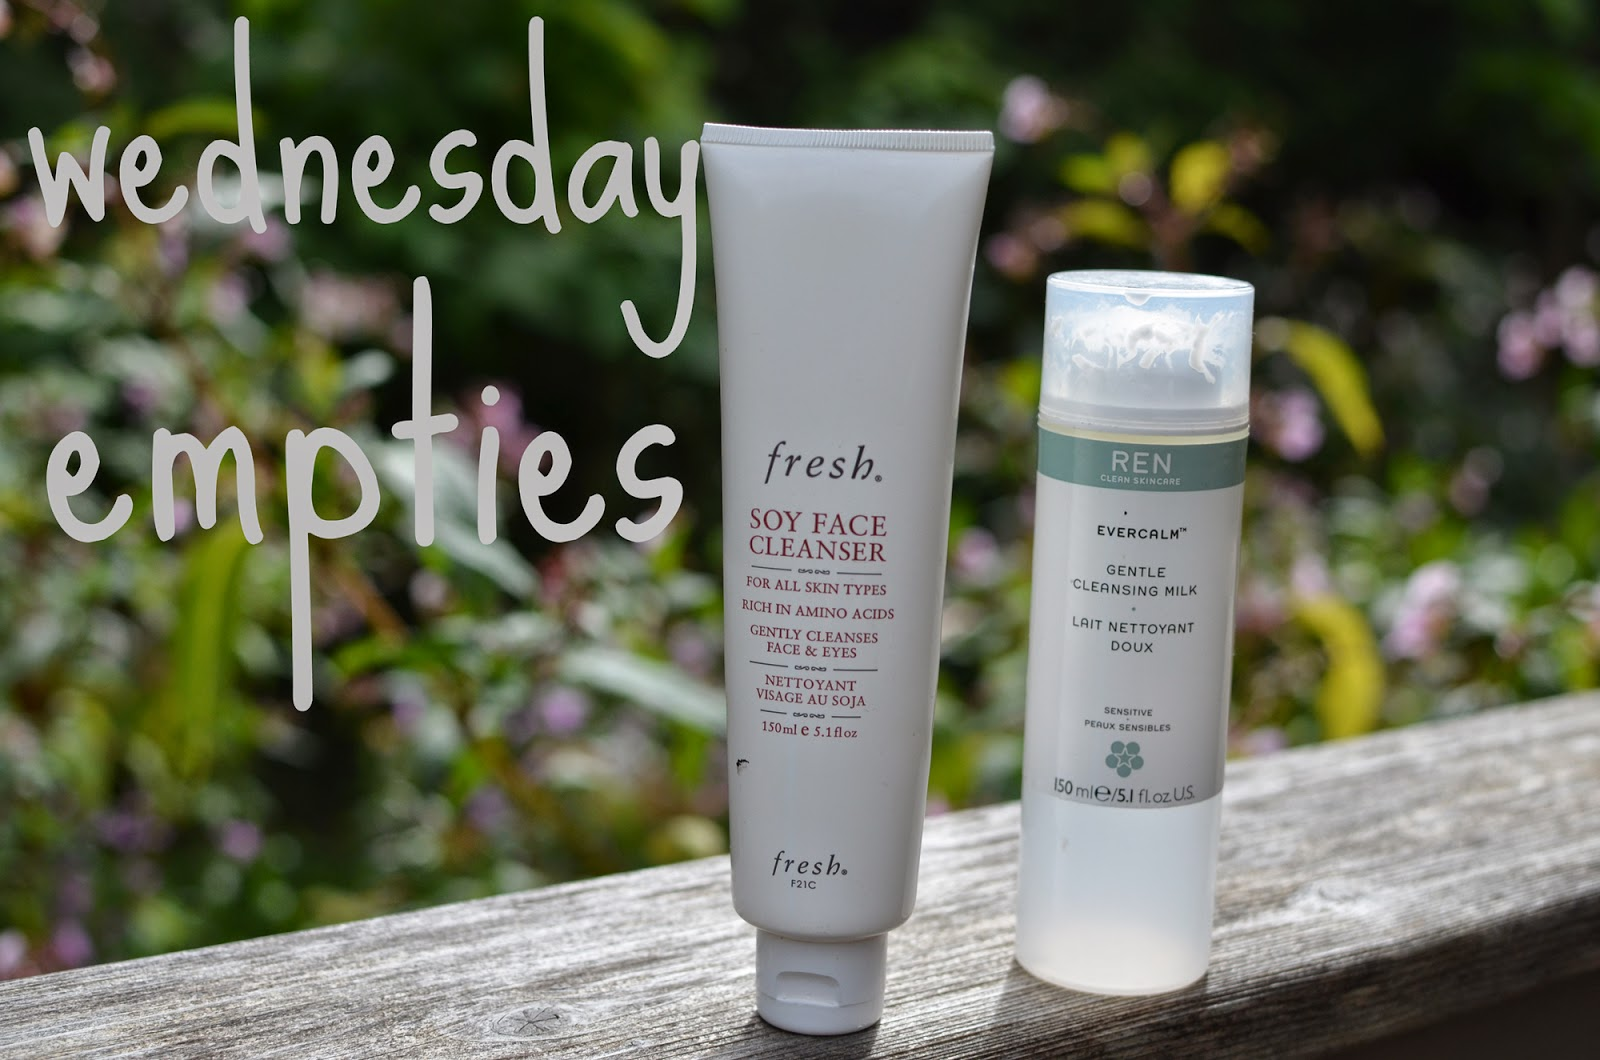 This Wednesday's empty products: Fresh Soy Cleanser and REN Evercalm Cleansing Milk